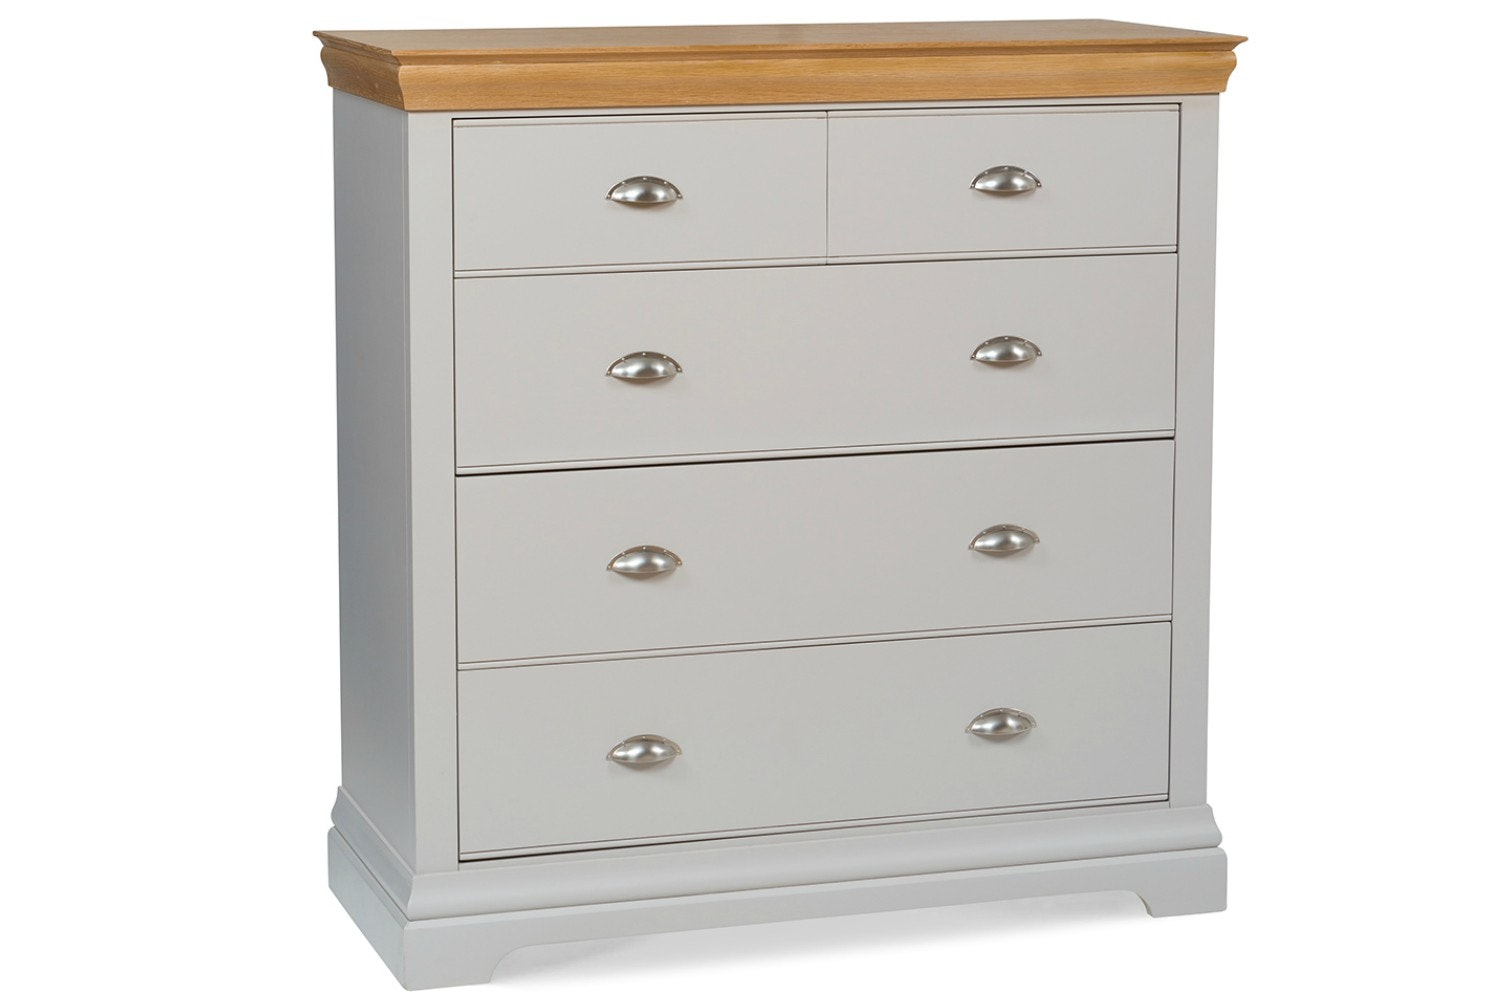 Ascott Chest of Drawers